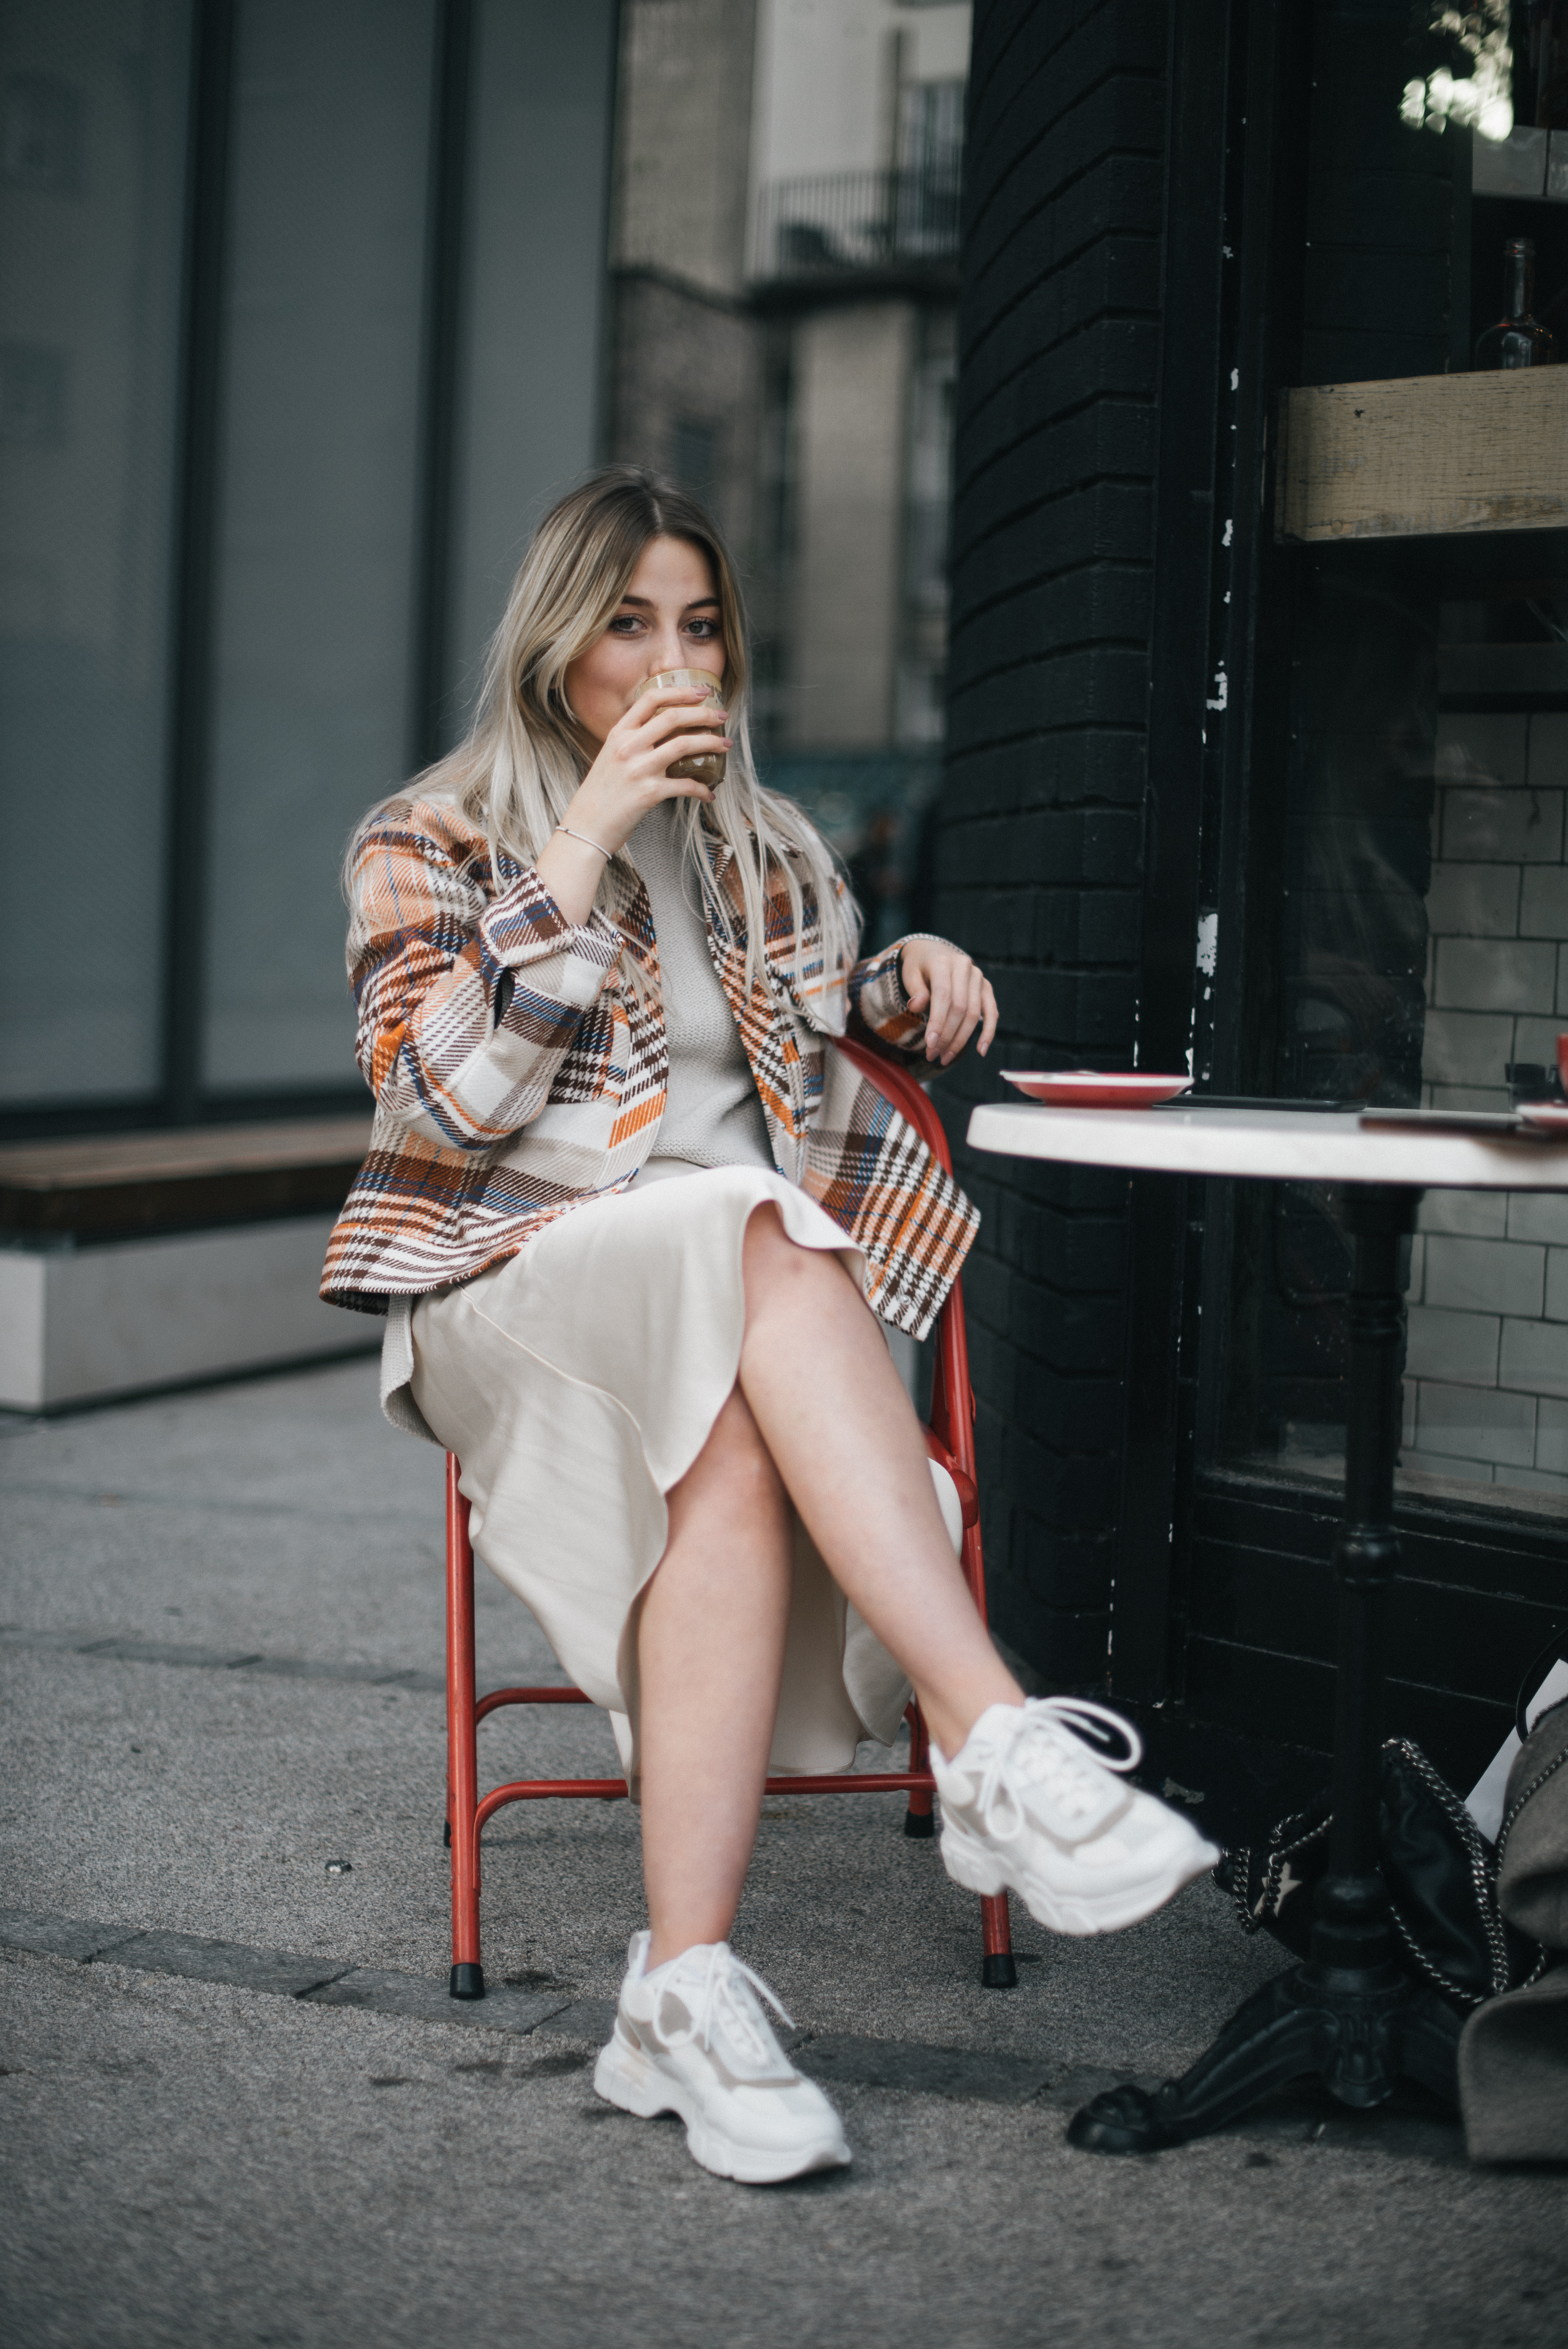 can bloggers ever do right?